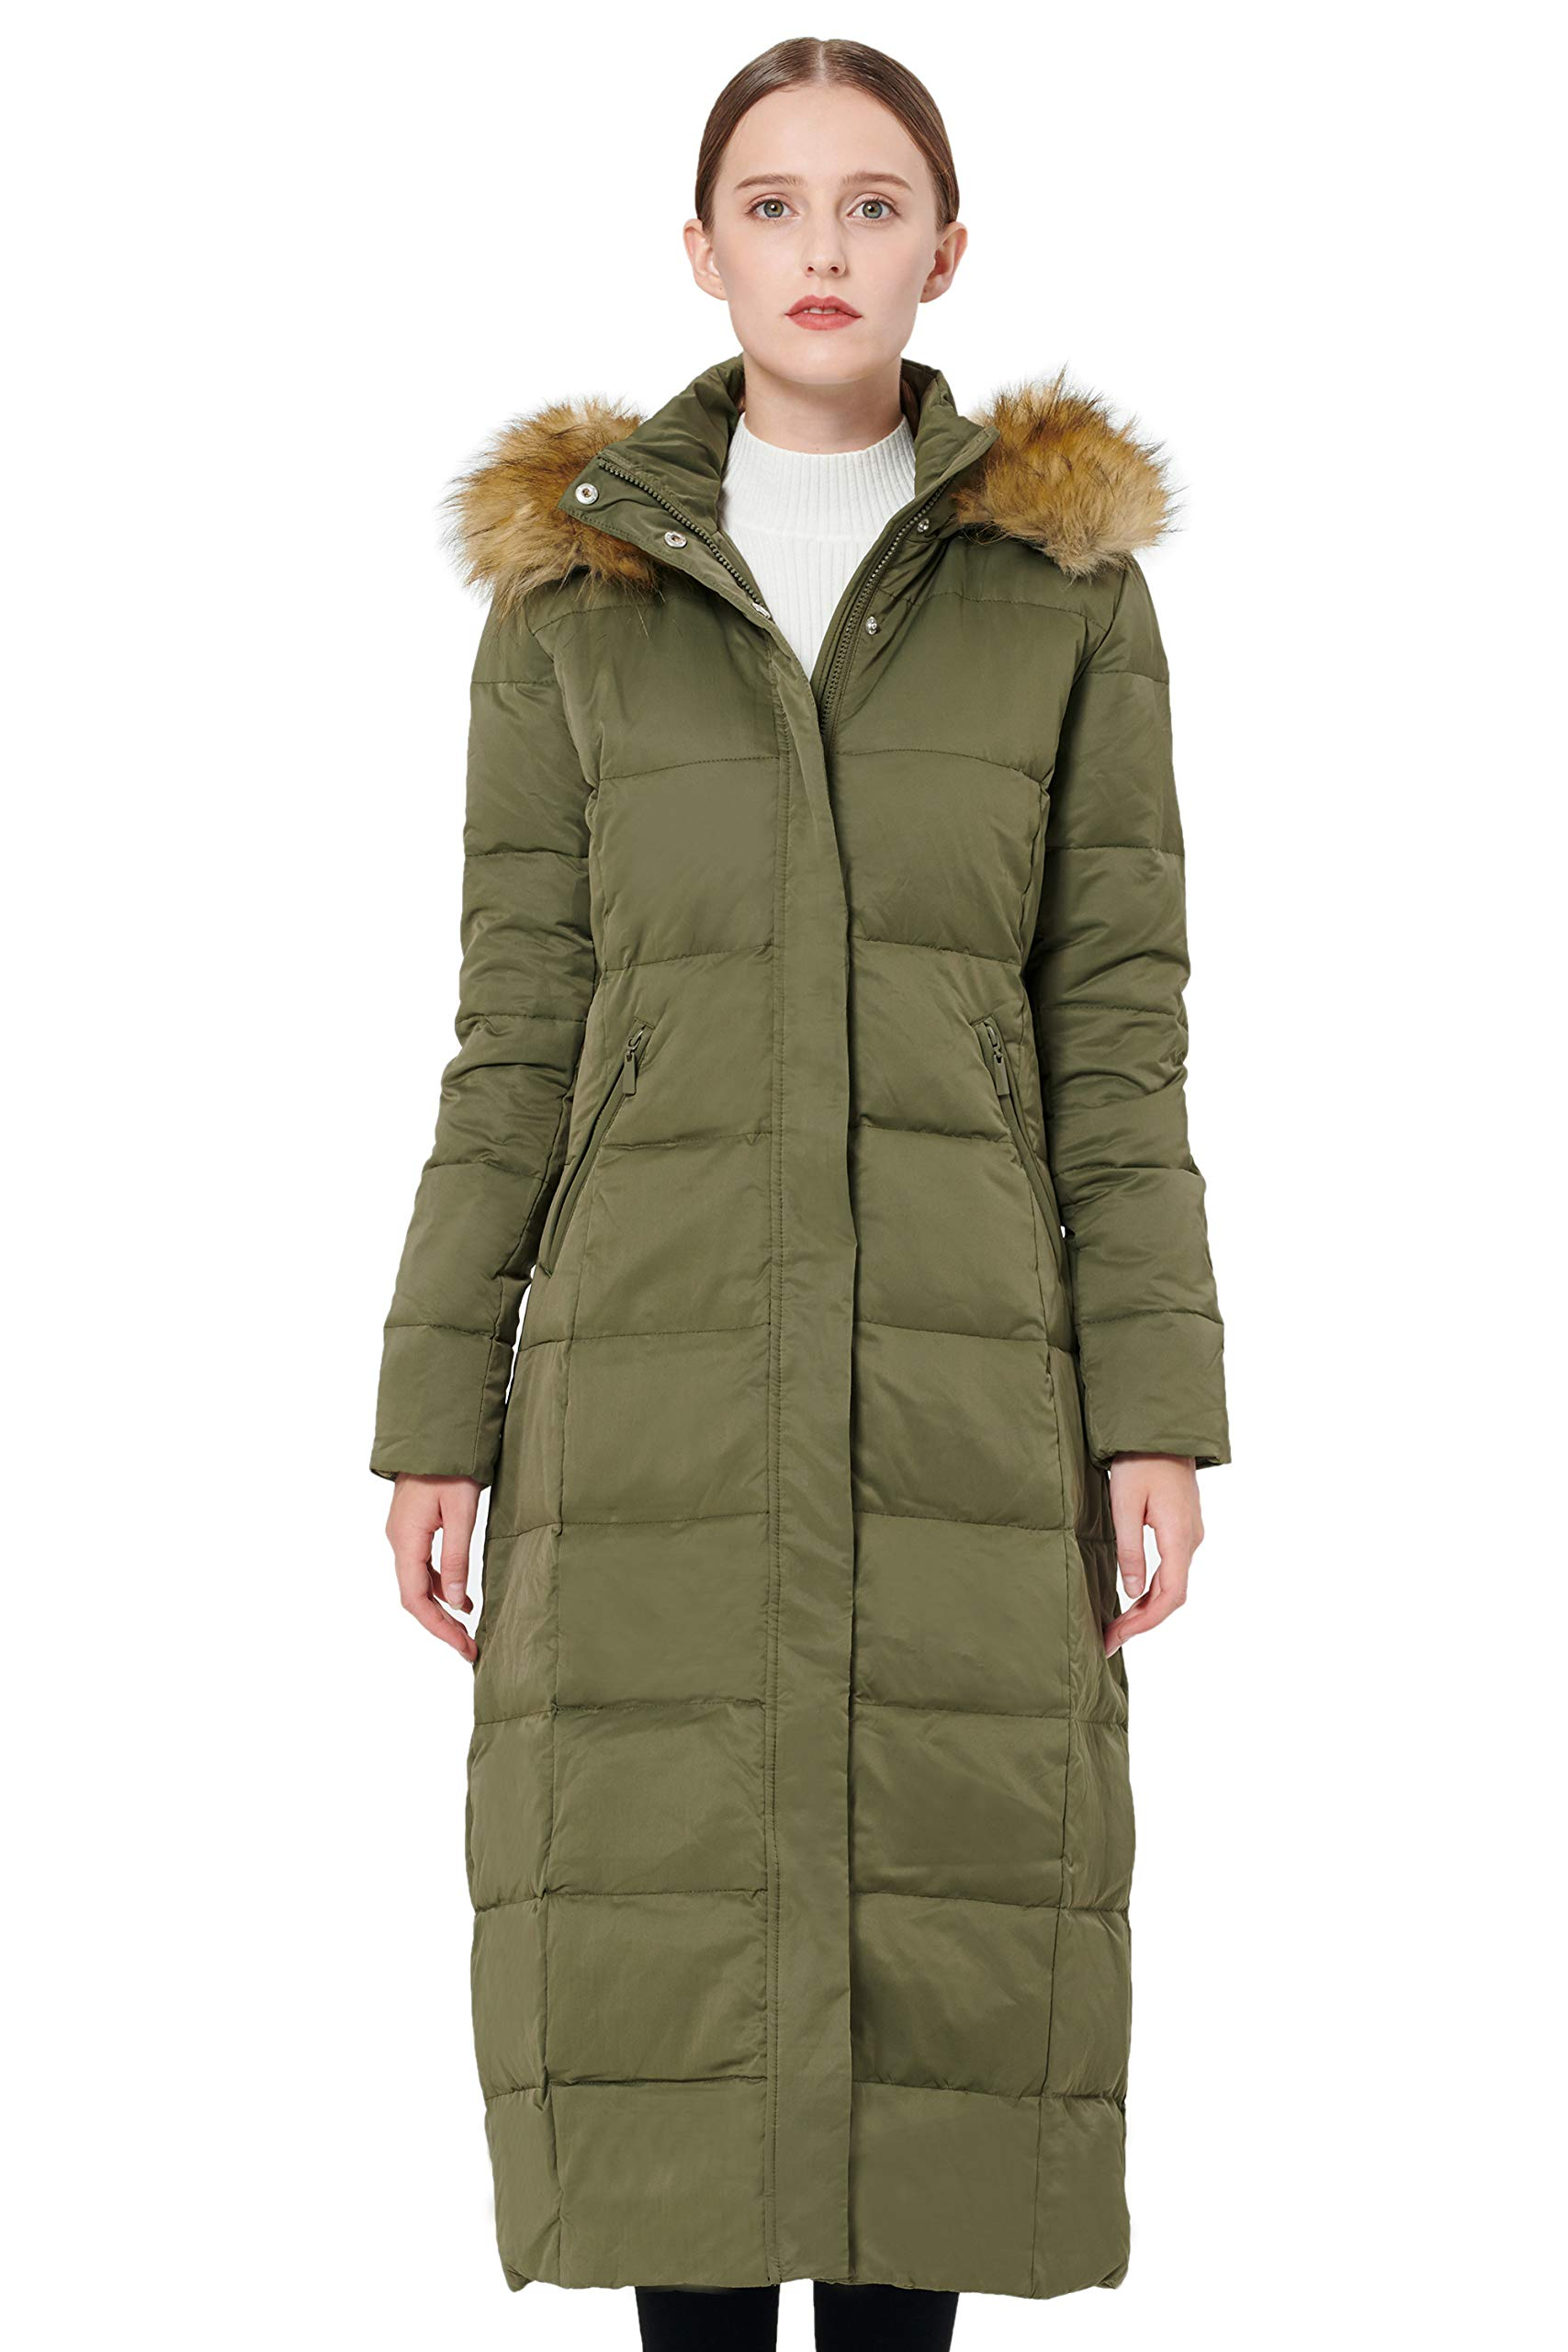 Orolay Women's Maxi Puffer Down Coat with Faux Fur Hood